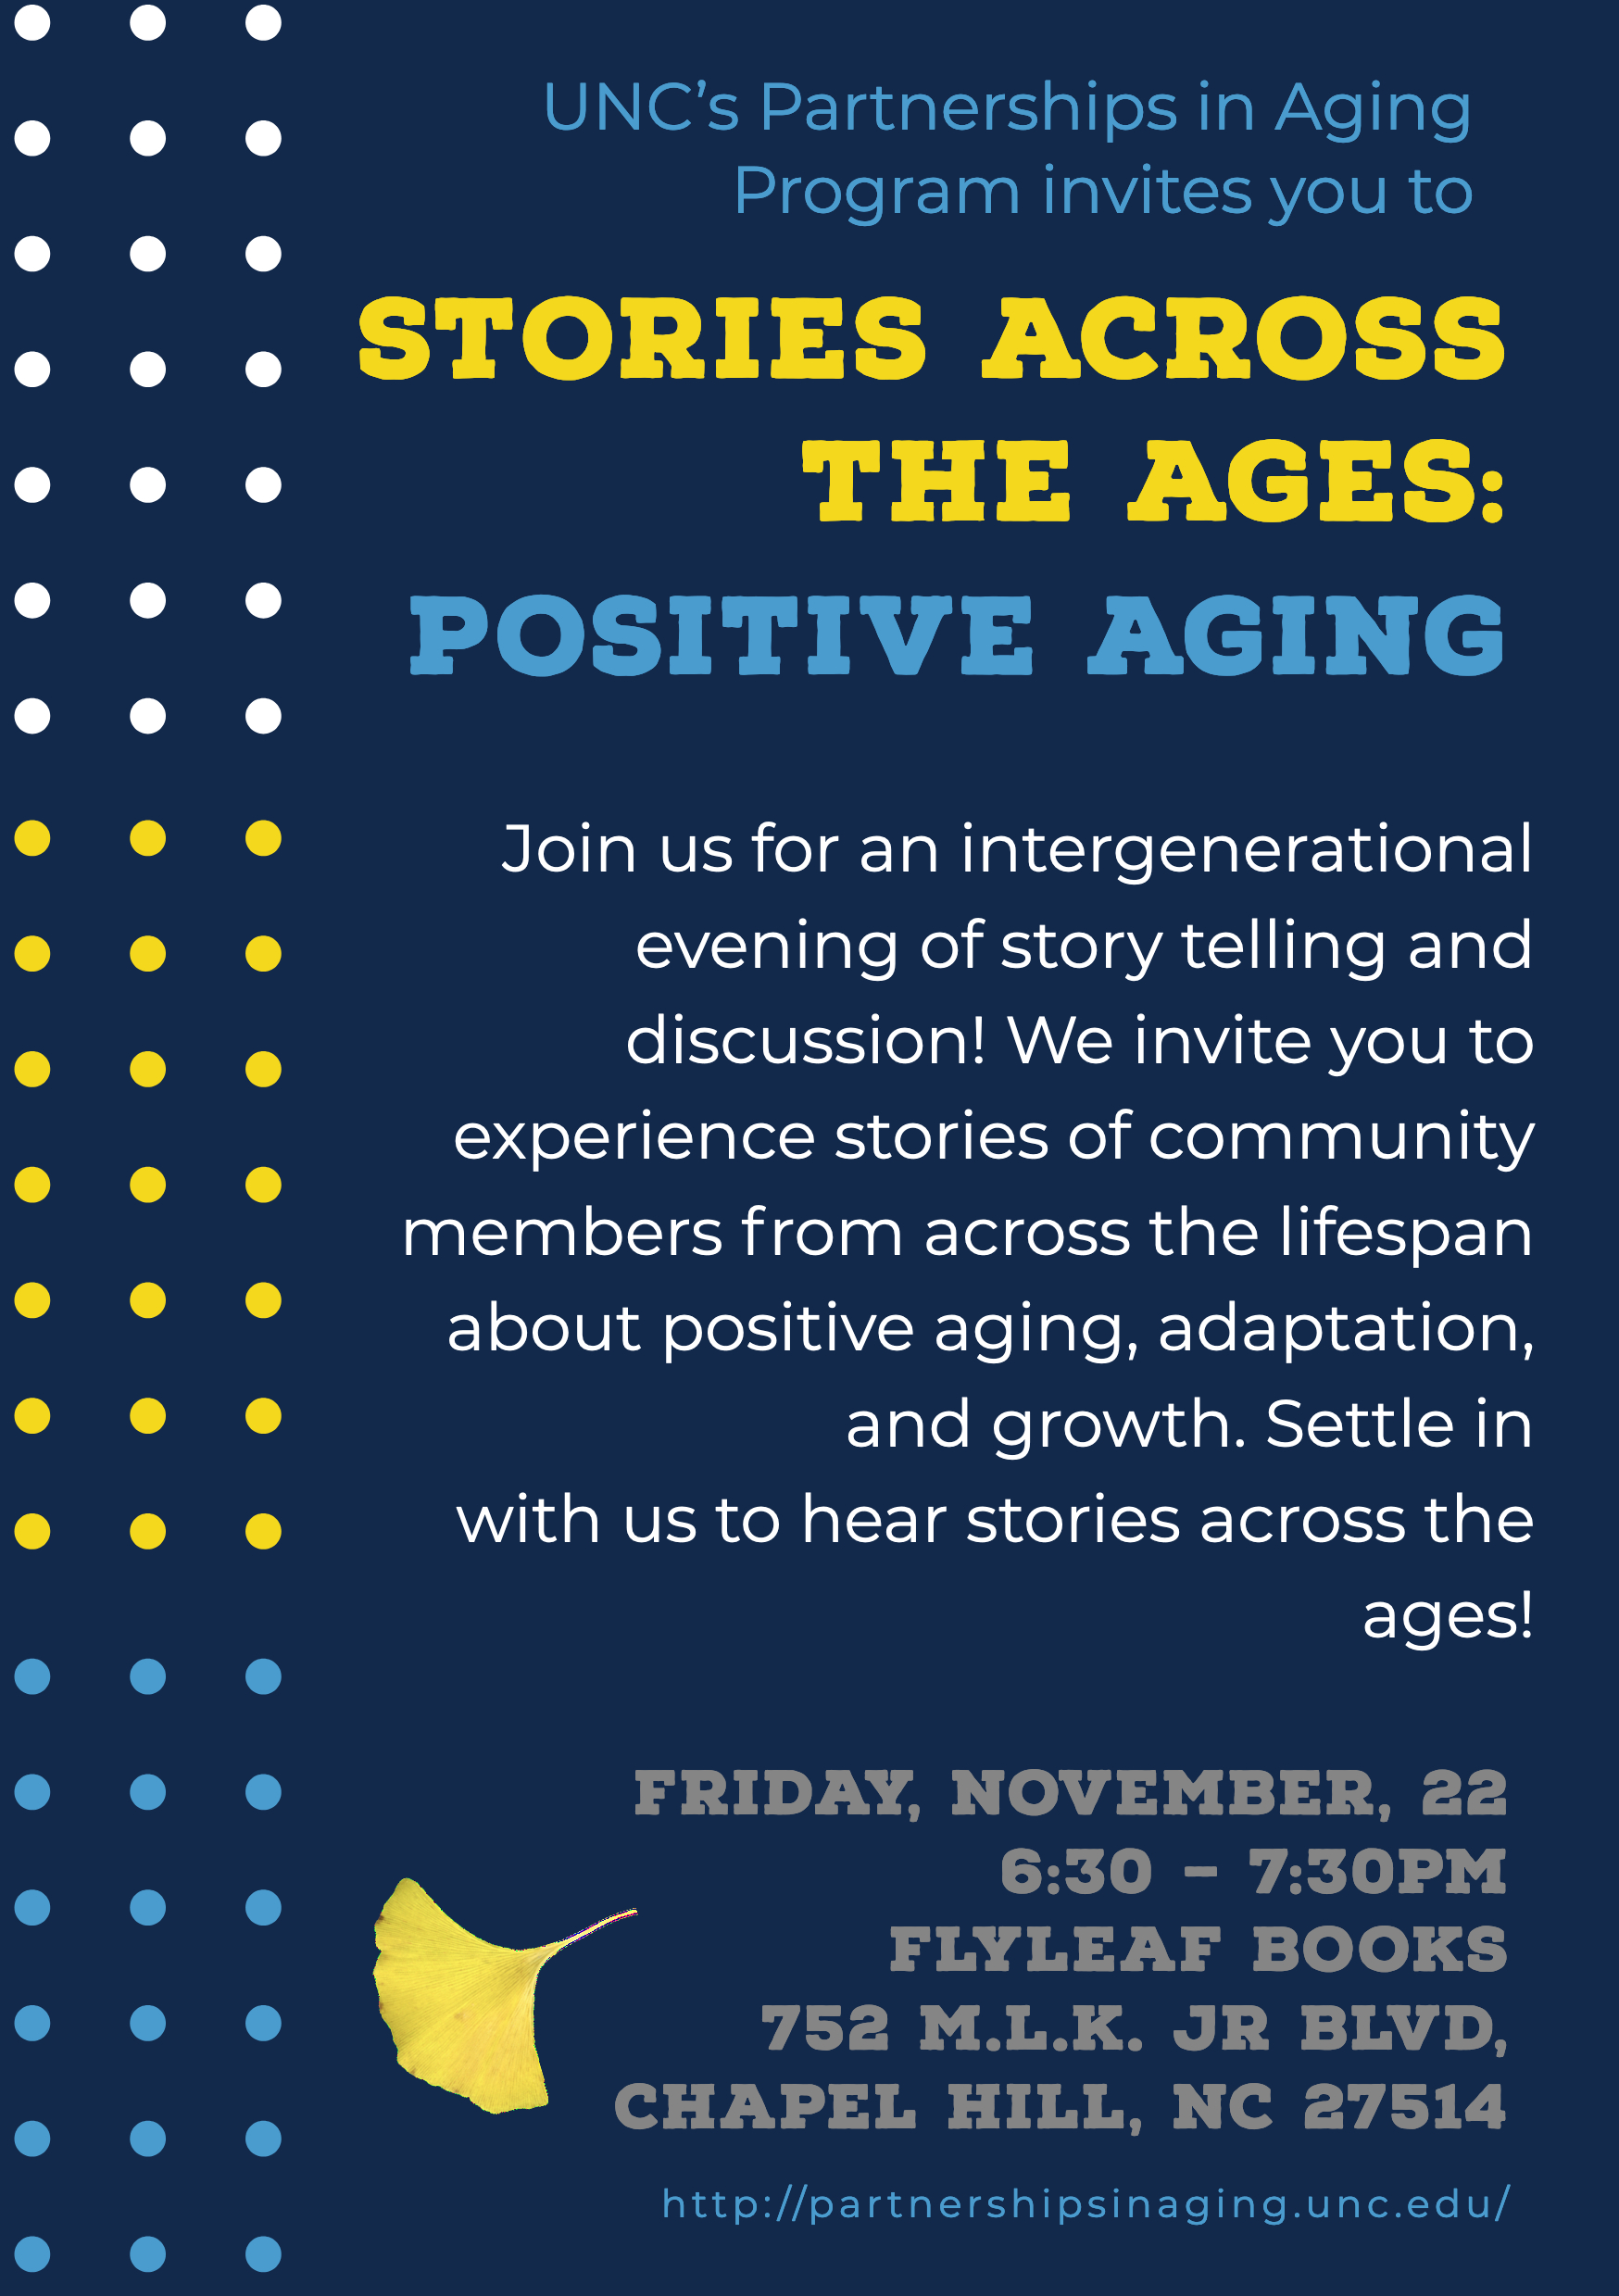 Flyer for Stories Across the Ages: Positive Aging at FlyLeaf Books on November 22, 2019 at 6:30pm